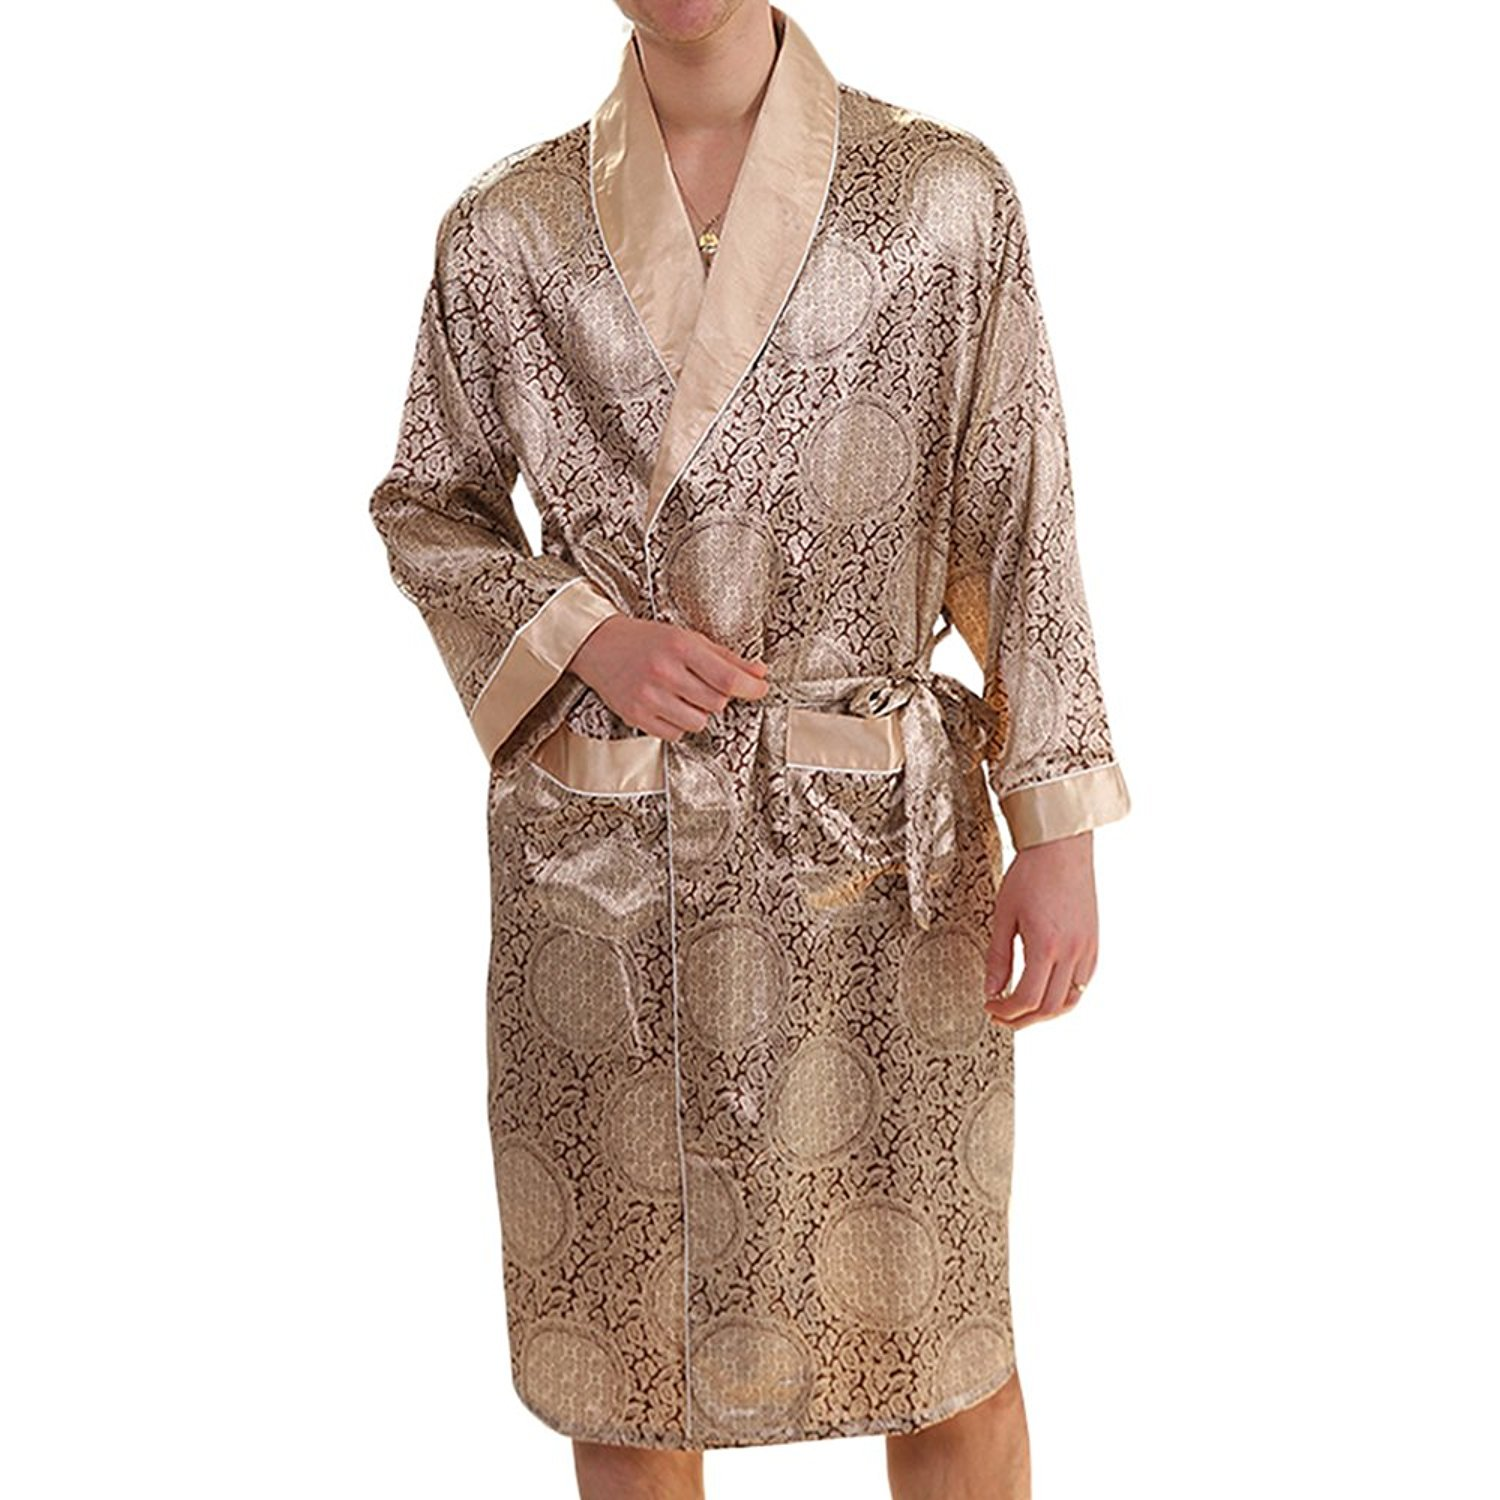 YIMANIE Men's Silk Satin Robe Luxurious Spa Long Sleeve House Kimono Nightwear Bathrobe,Gold,XL